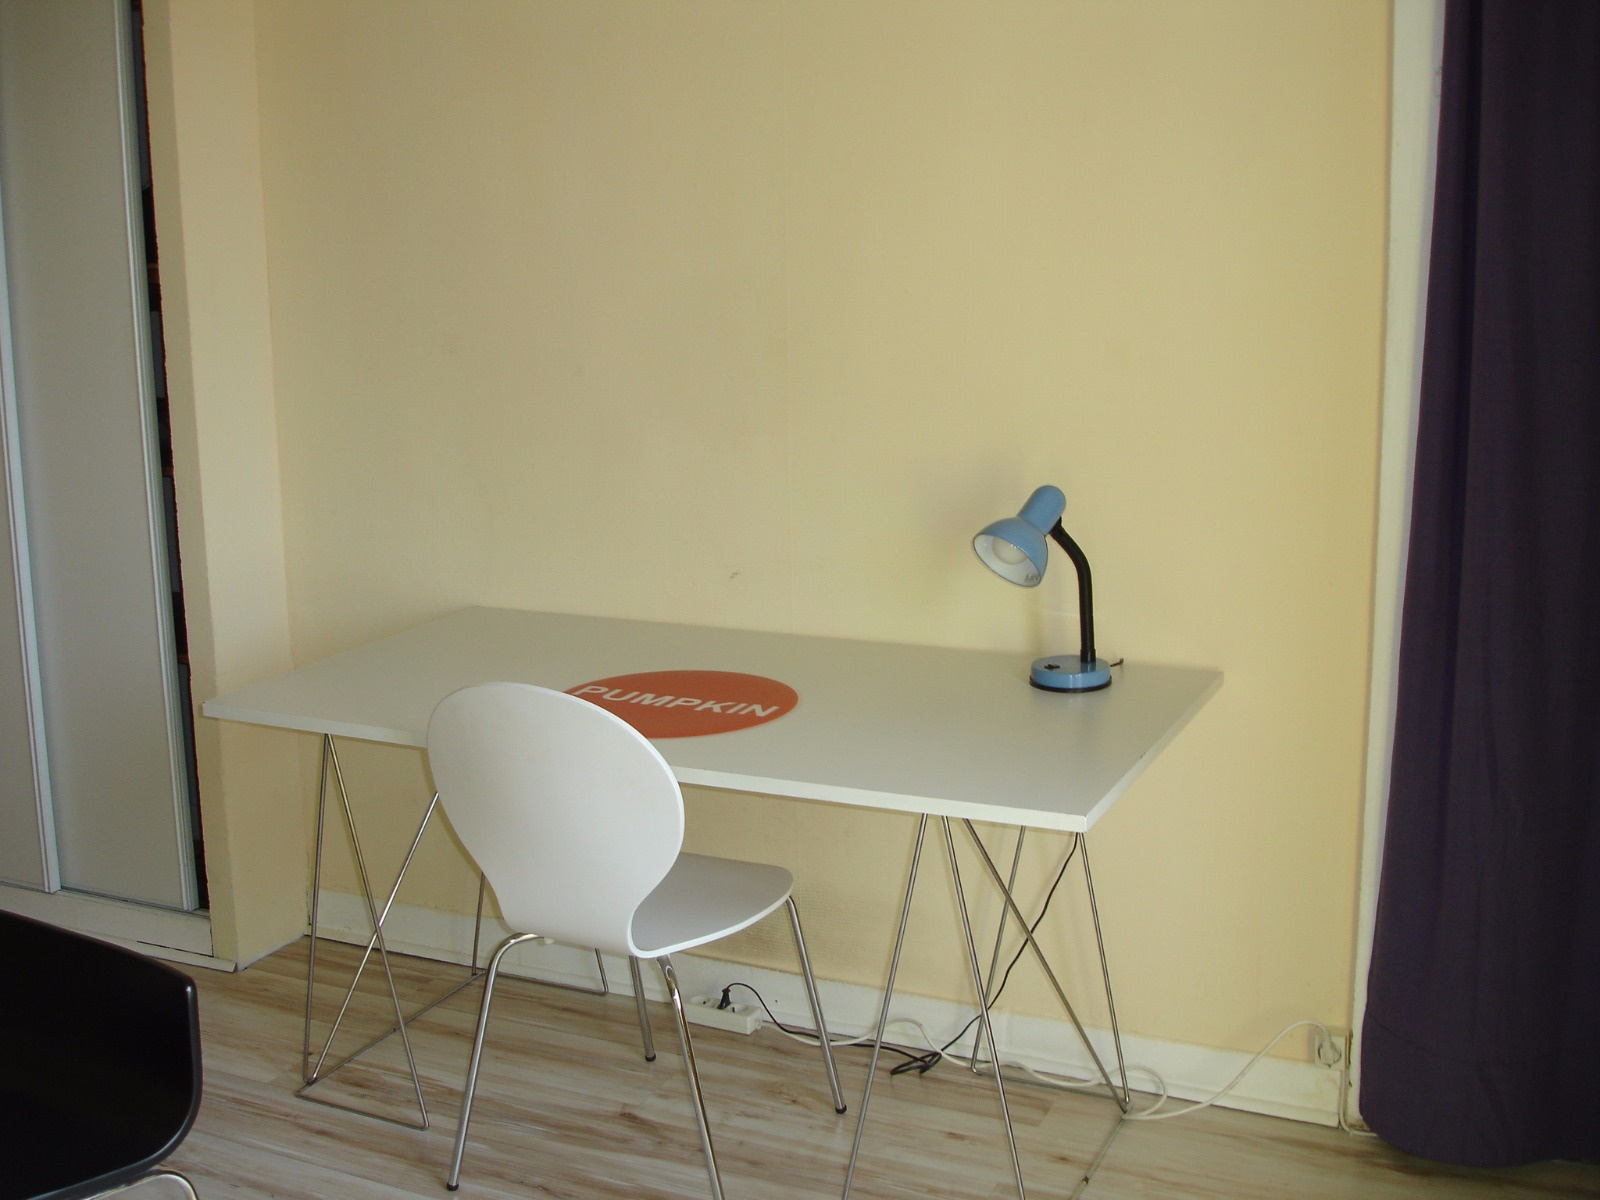 Location studio meuble victor thuillat - Location appartement meuble limoges ...